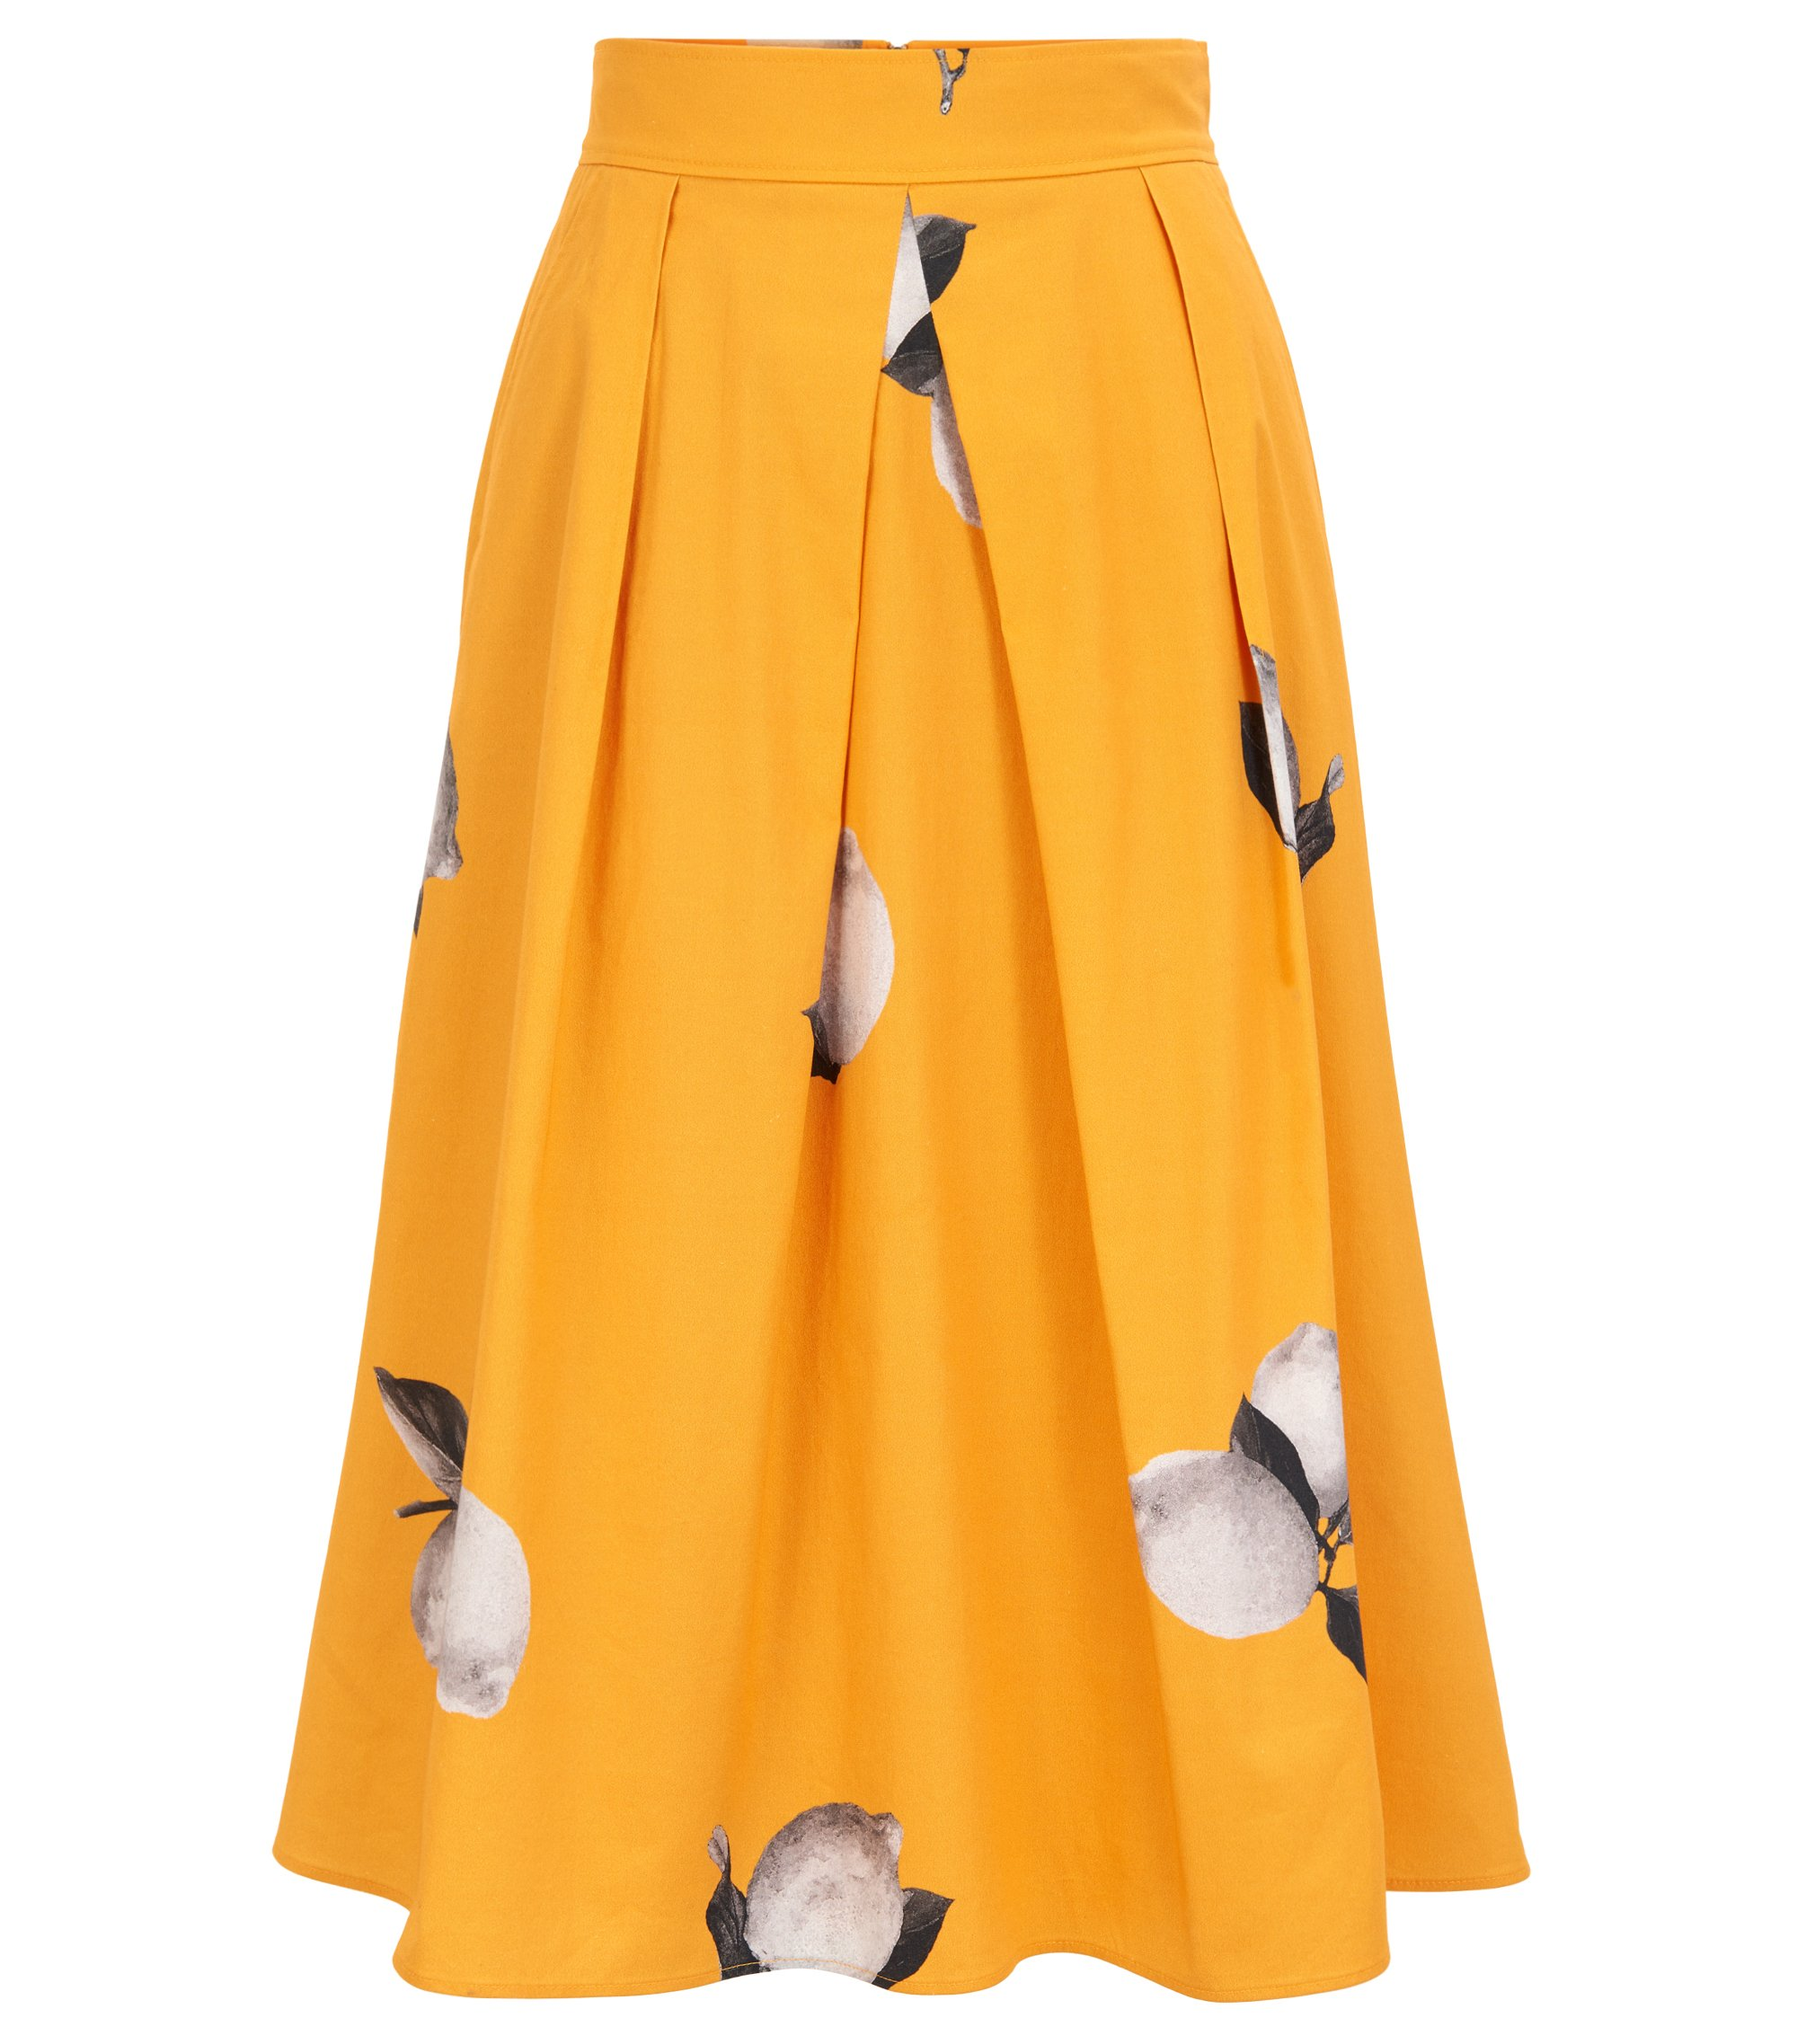 Lemon-print A-line skirt in stretch cotton poplin, Patterned